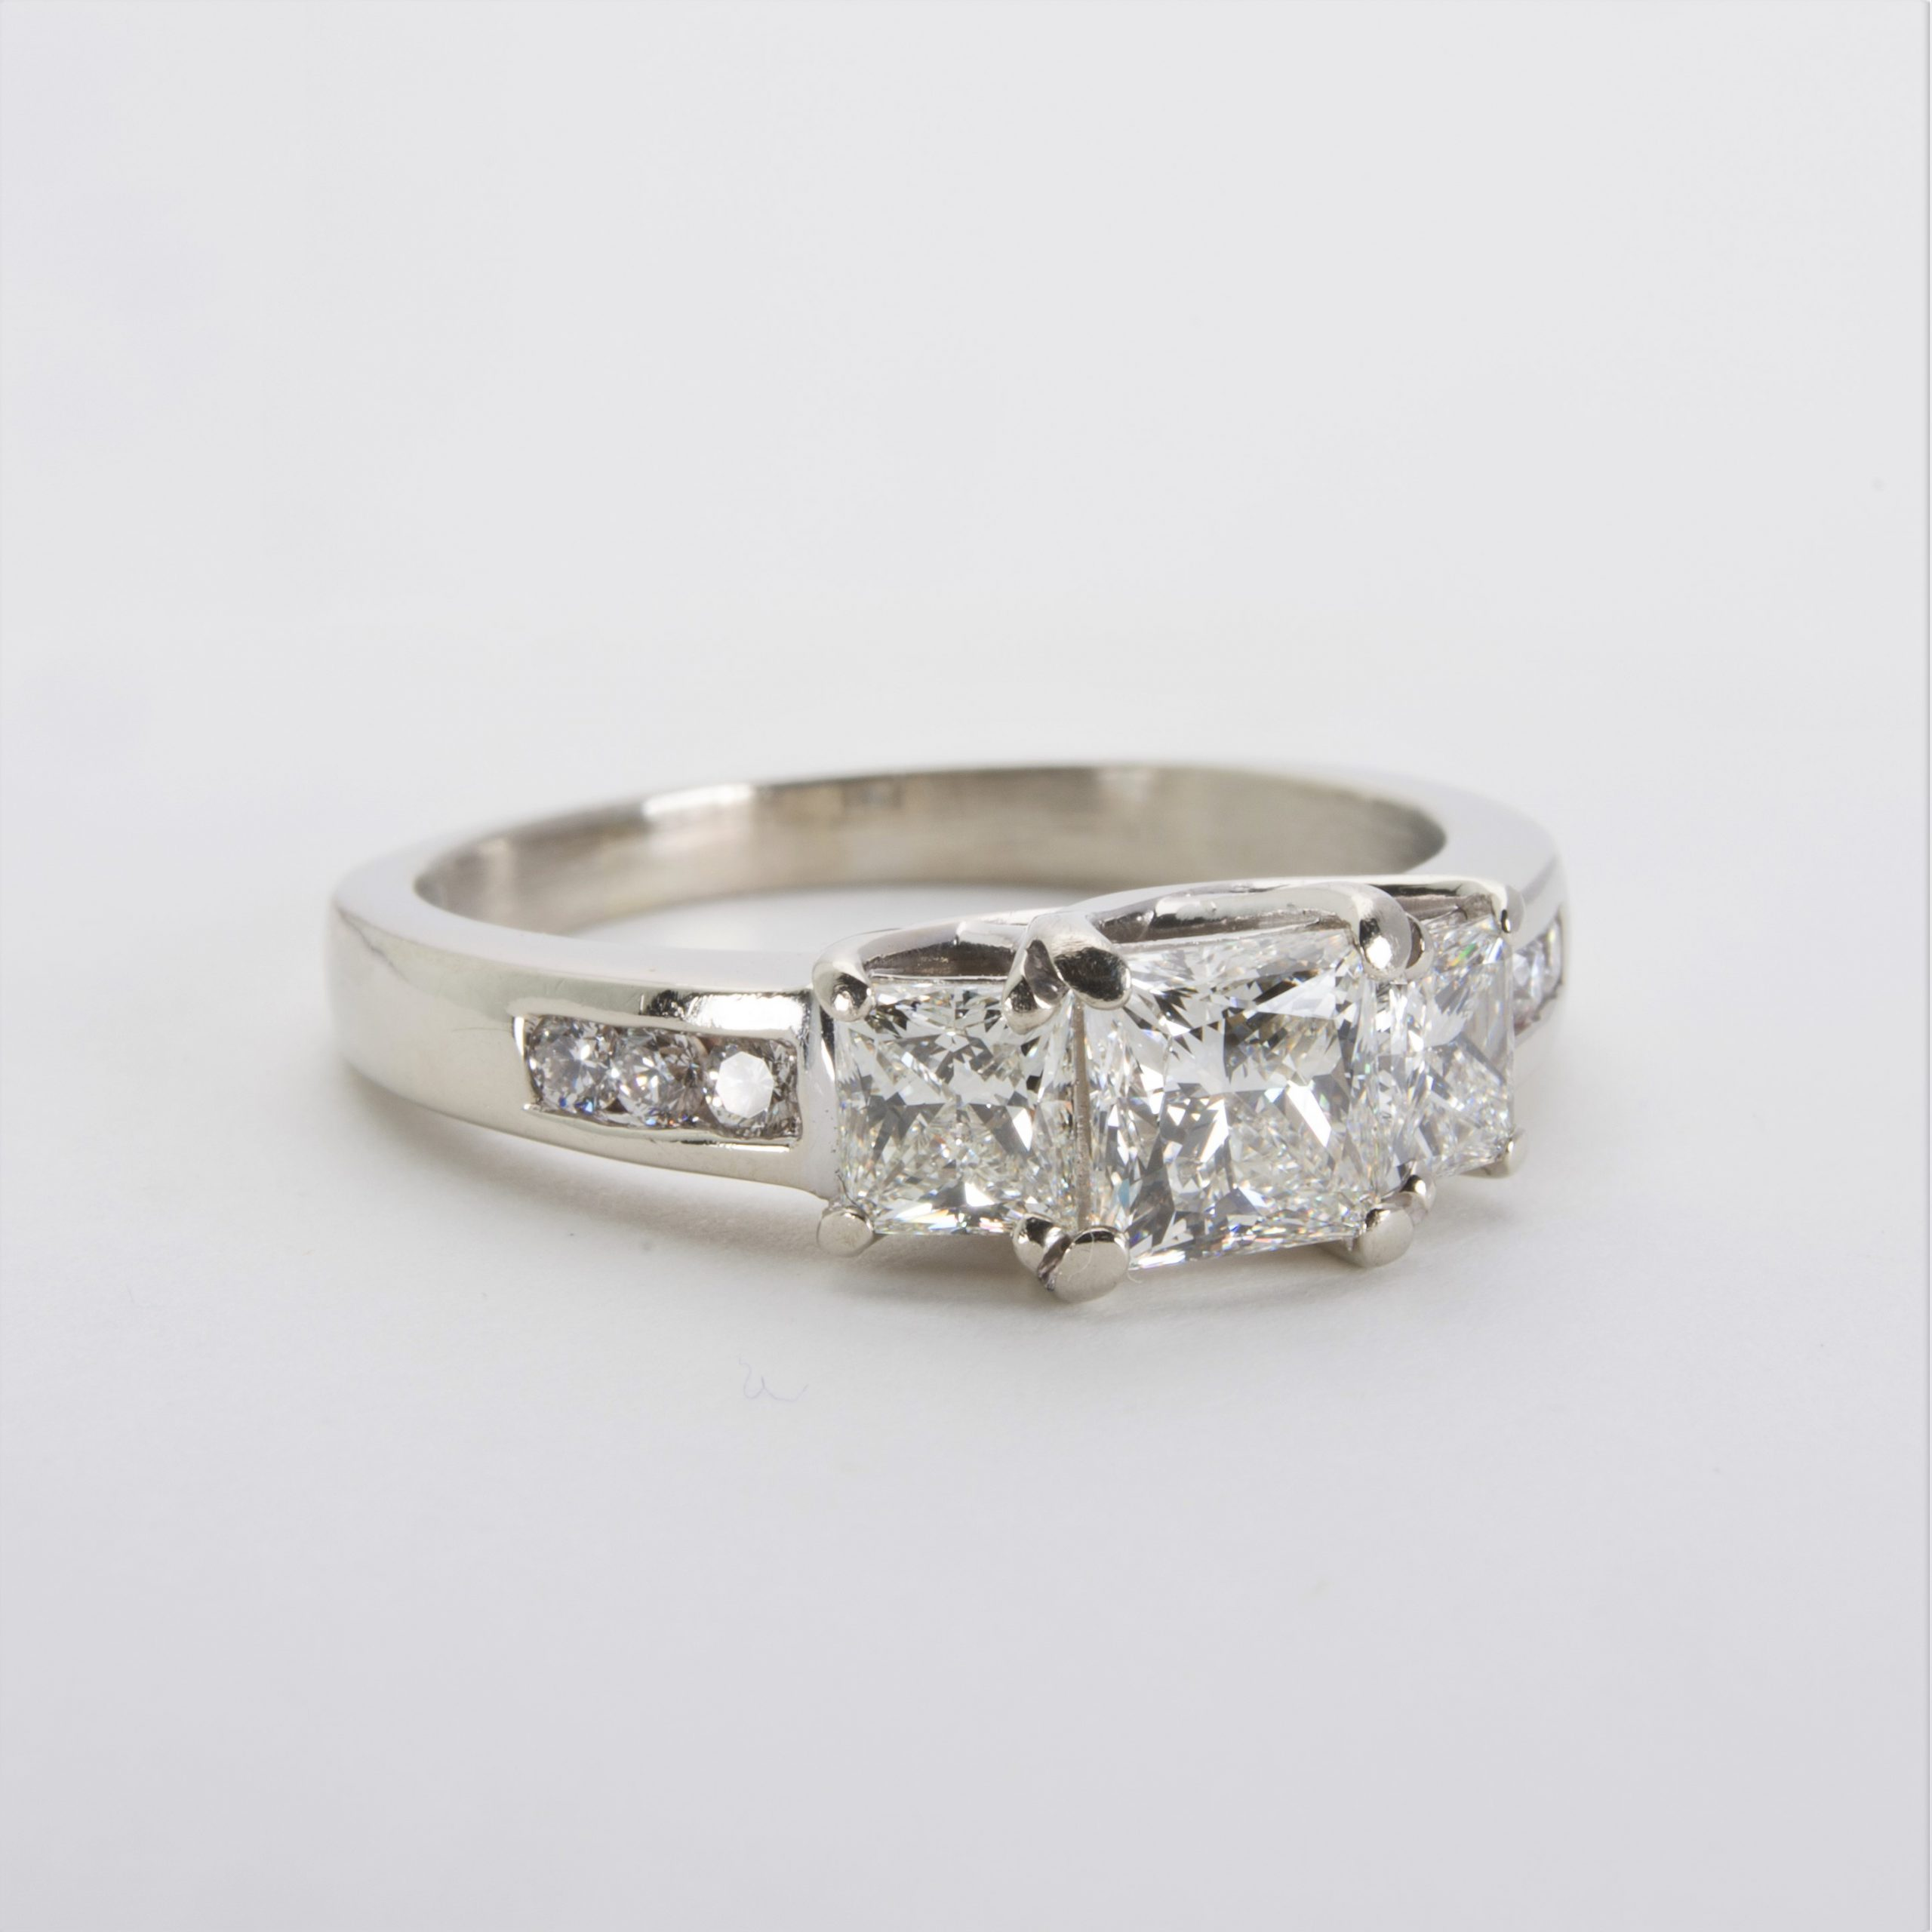 14K White Gold Three-Stone Diamond Ring